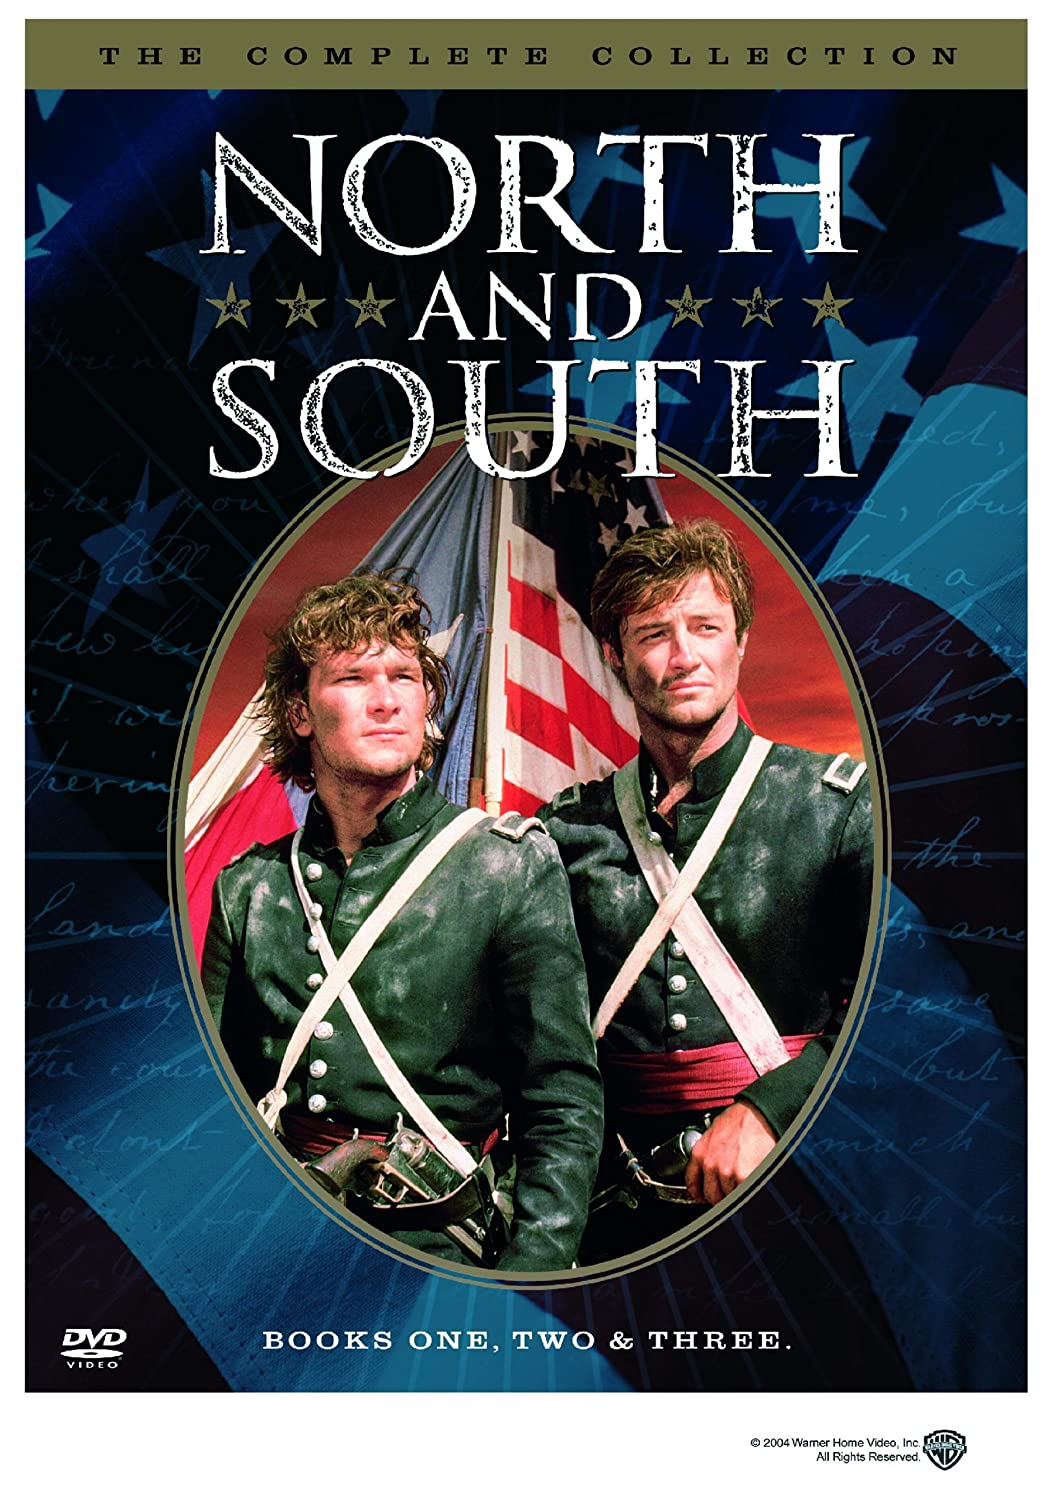 Amazon com: North and South: The Complete Collection (Books